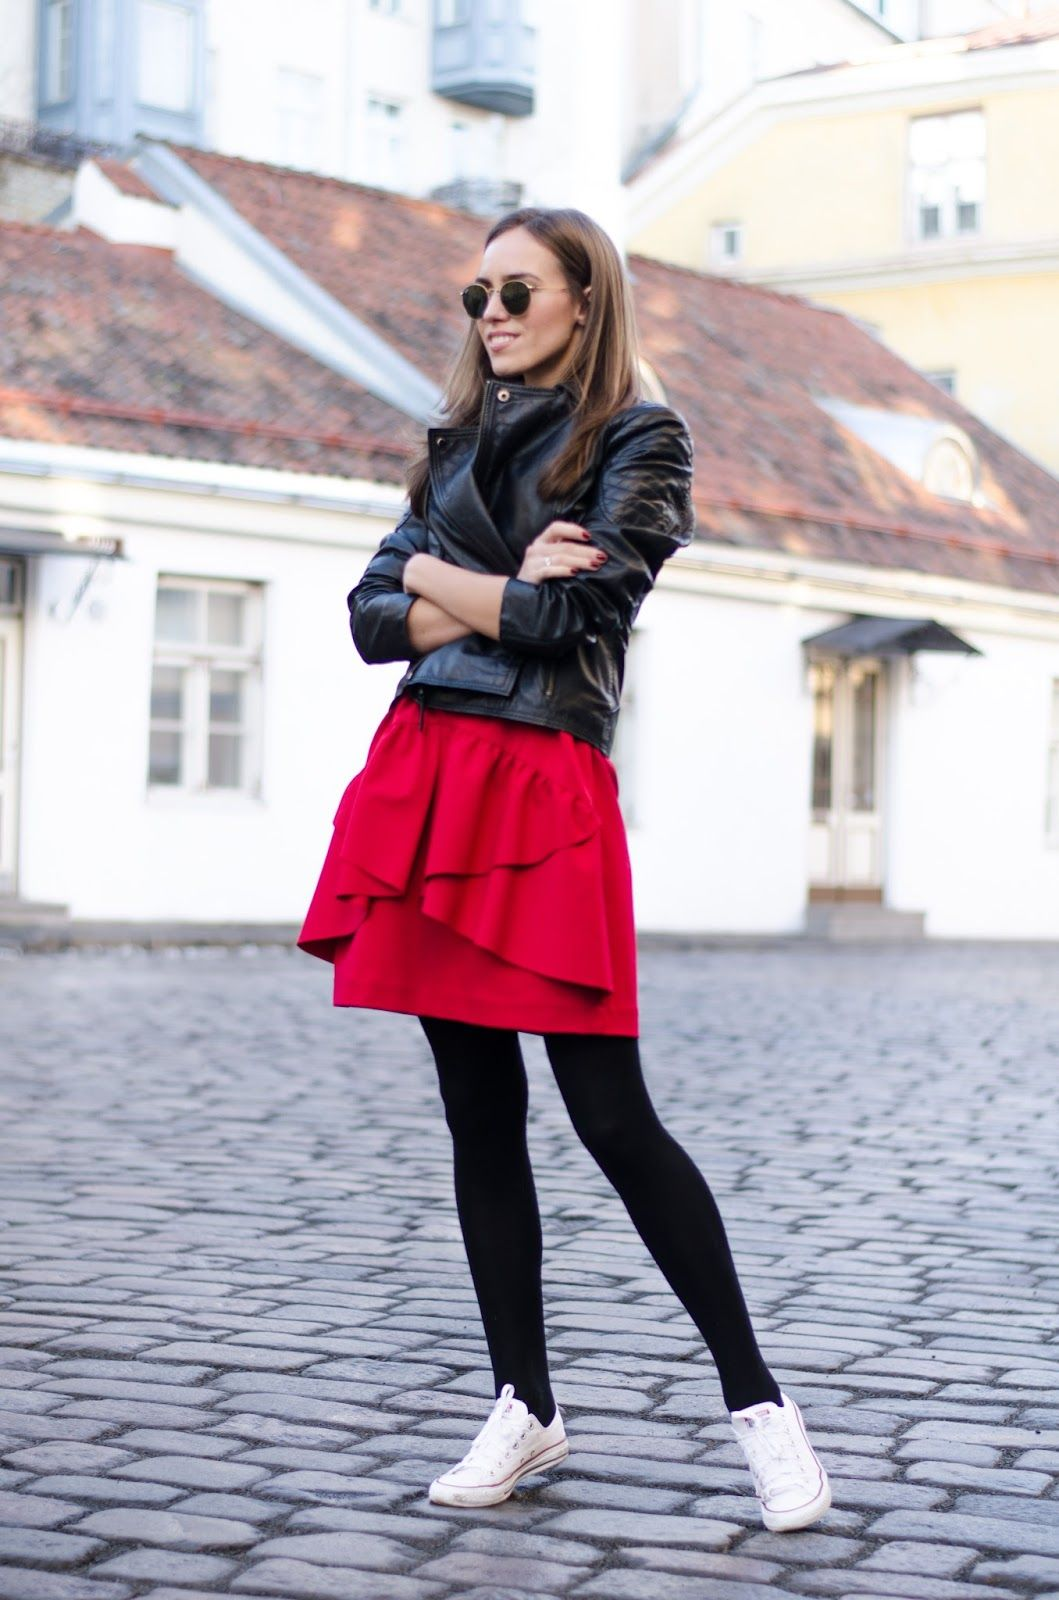 Red Dress Sneakers Leather Jacket Outfit Dress And Sneakers Outfit Red Dress Dress With Sneakers [ 1600 x 1059 Pixel ]